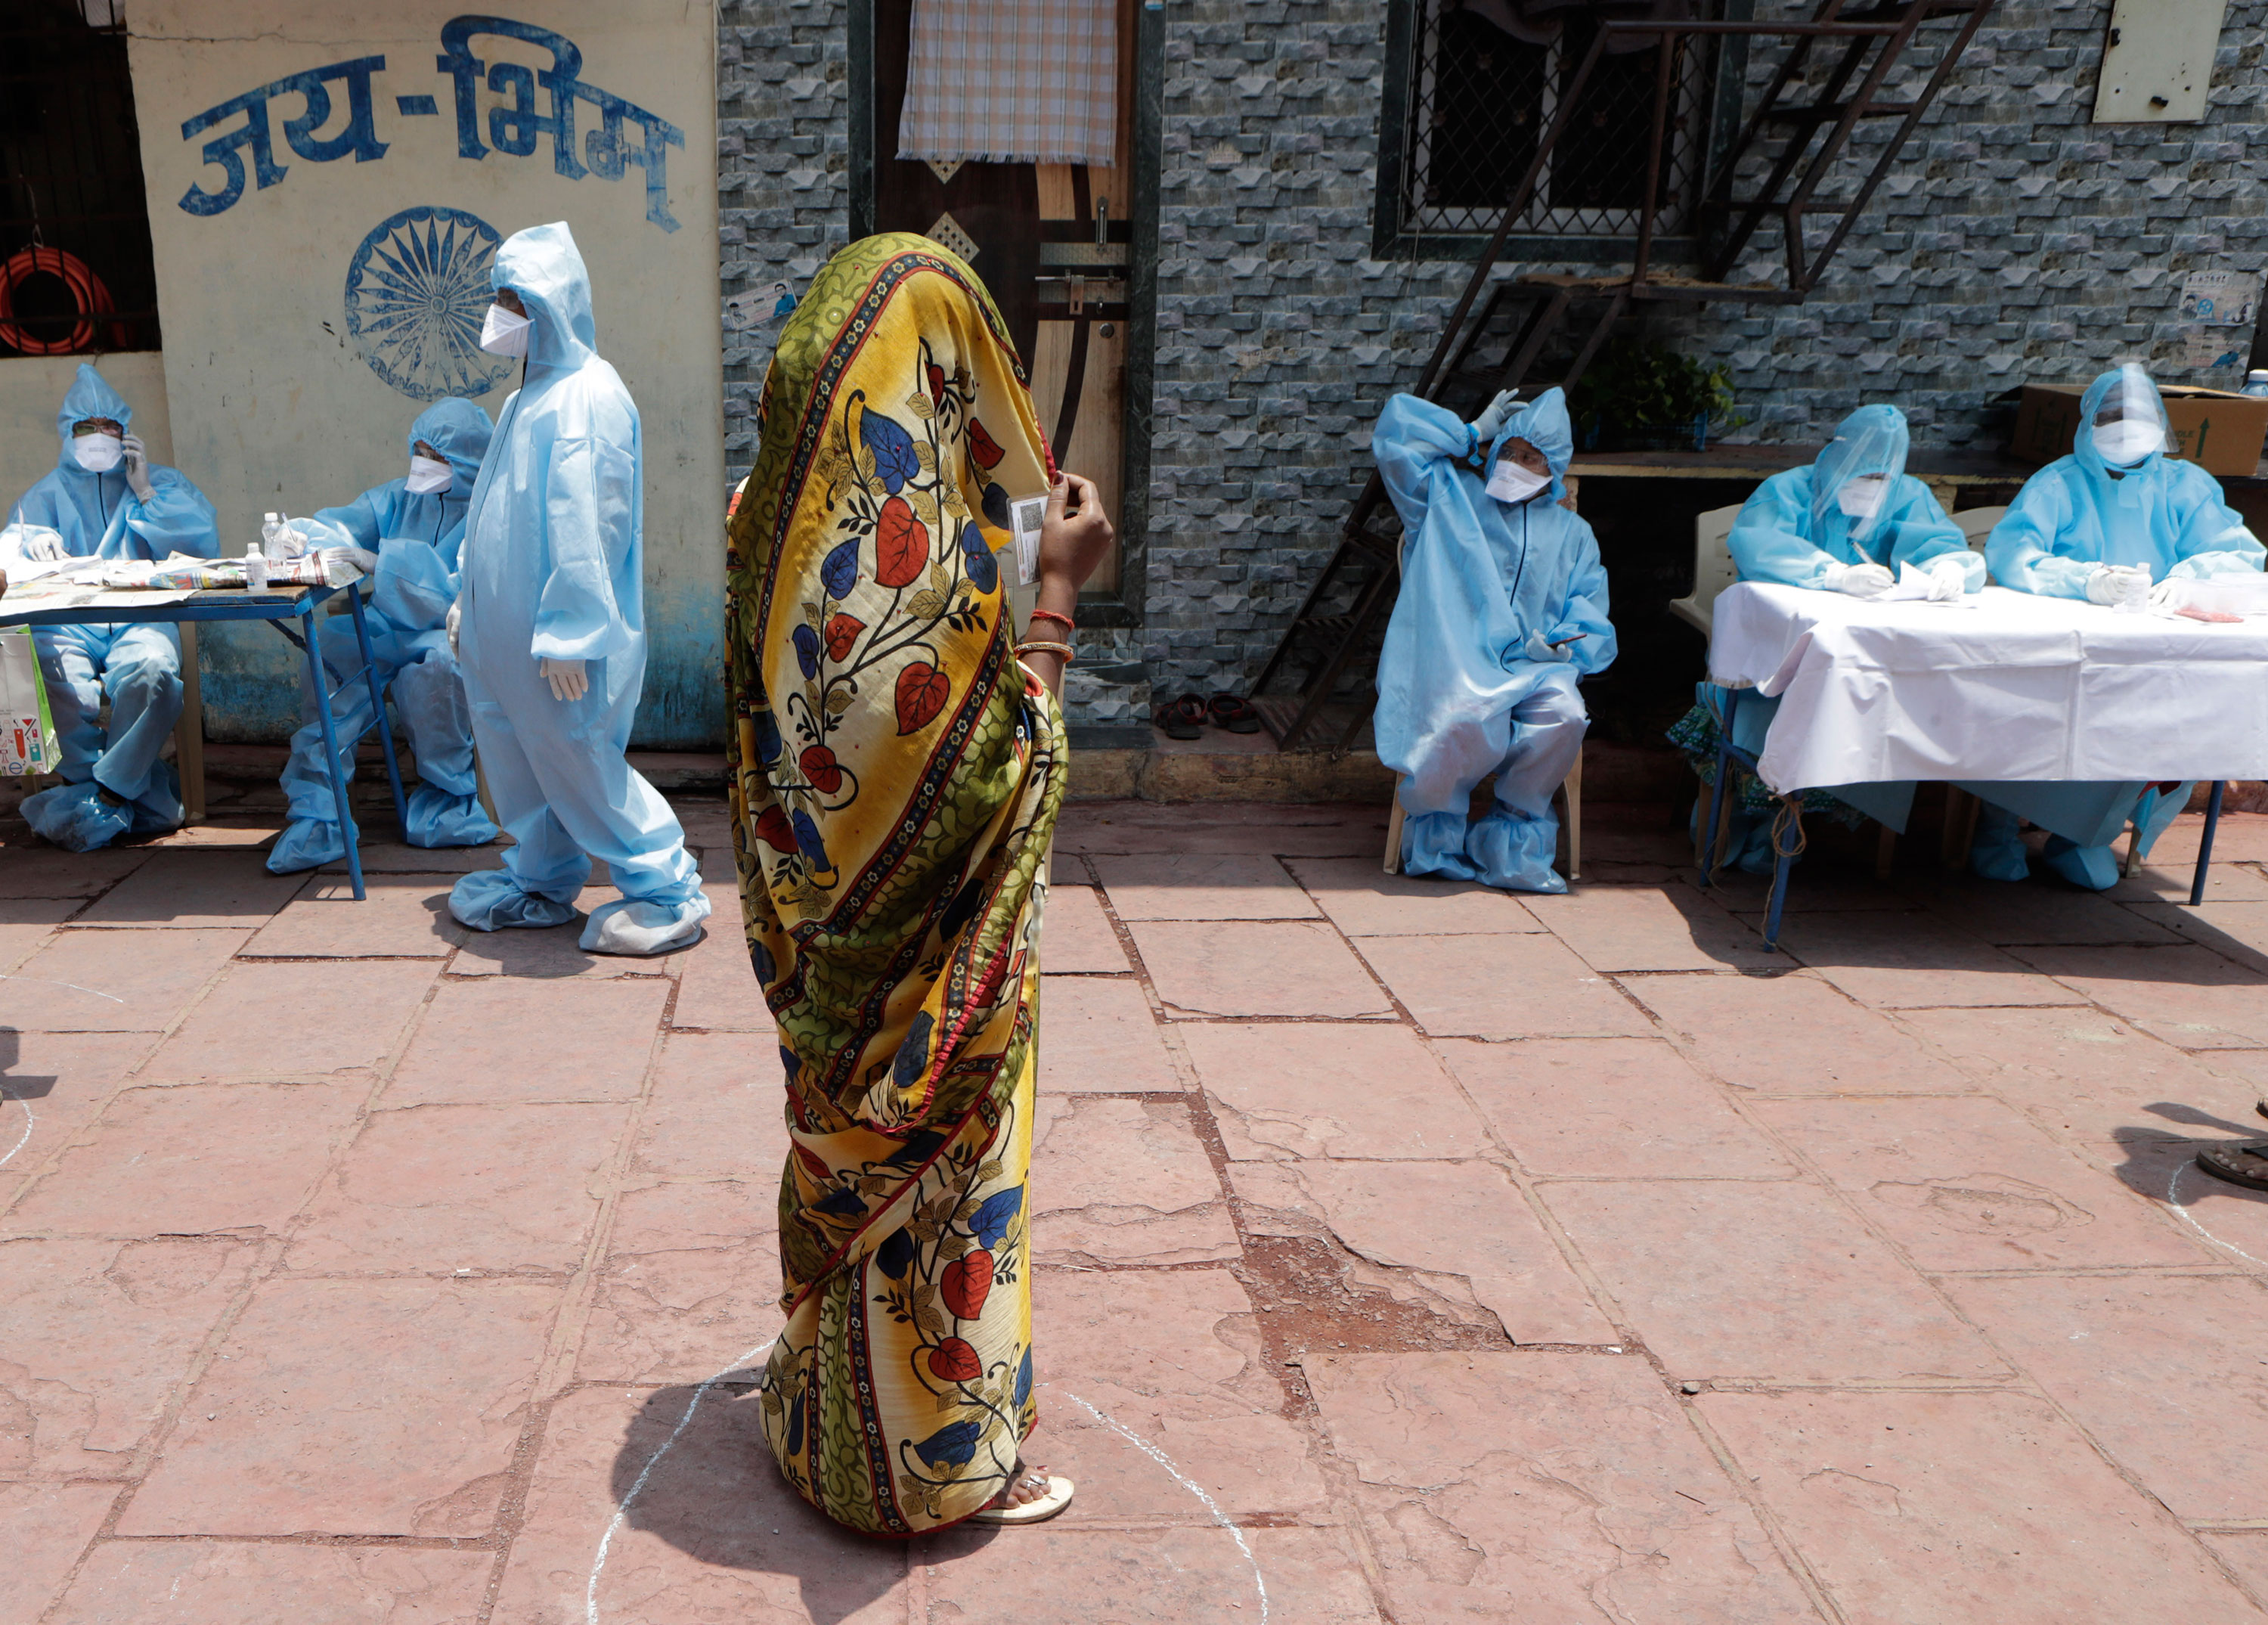 A woman waits for her turn for a free medical check in Mumbai, India, on April 18.